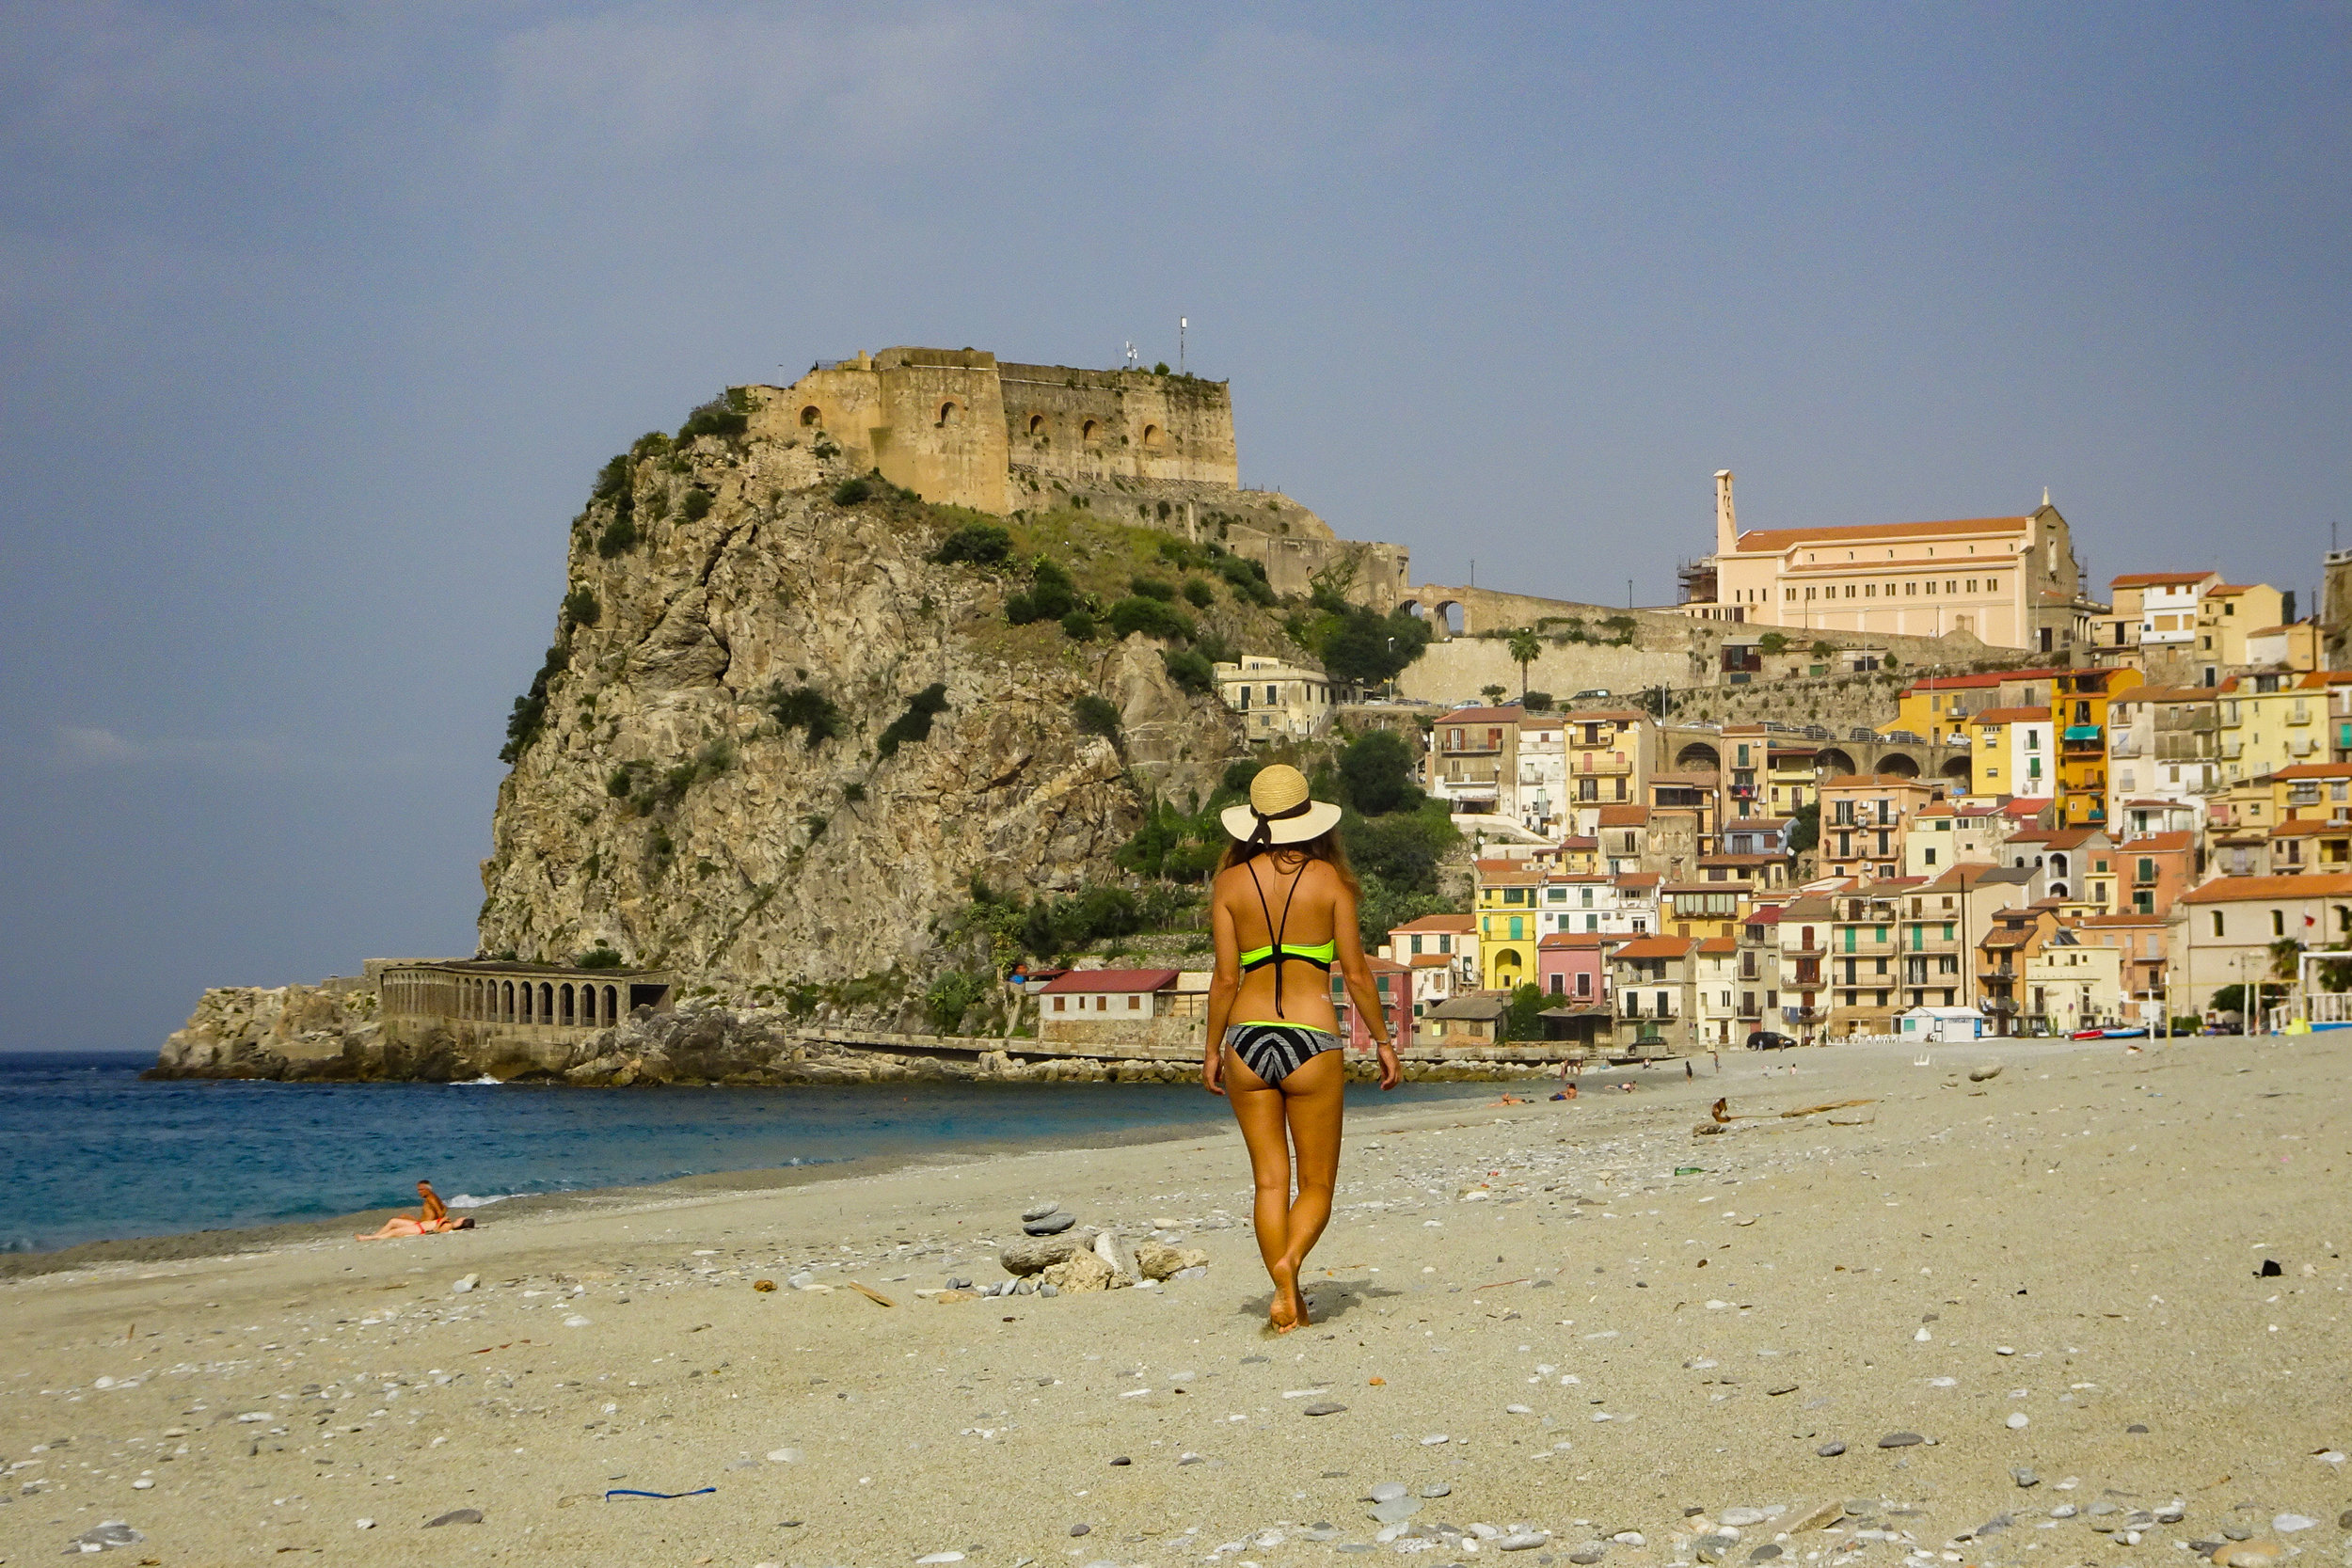 3.) Scilla, Italy - Our favourite beachside spot in all of Italy. The free showers on the beach are the icing on the cake.